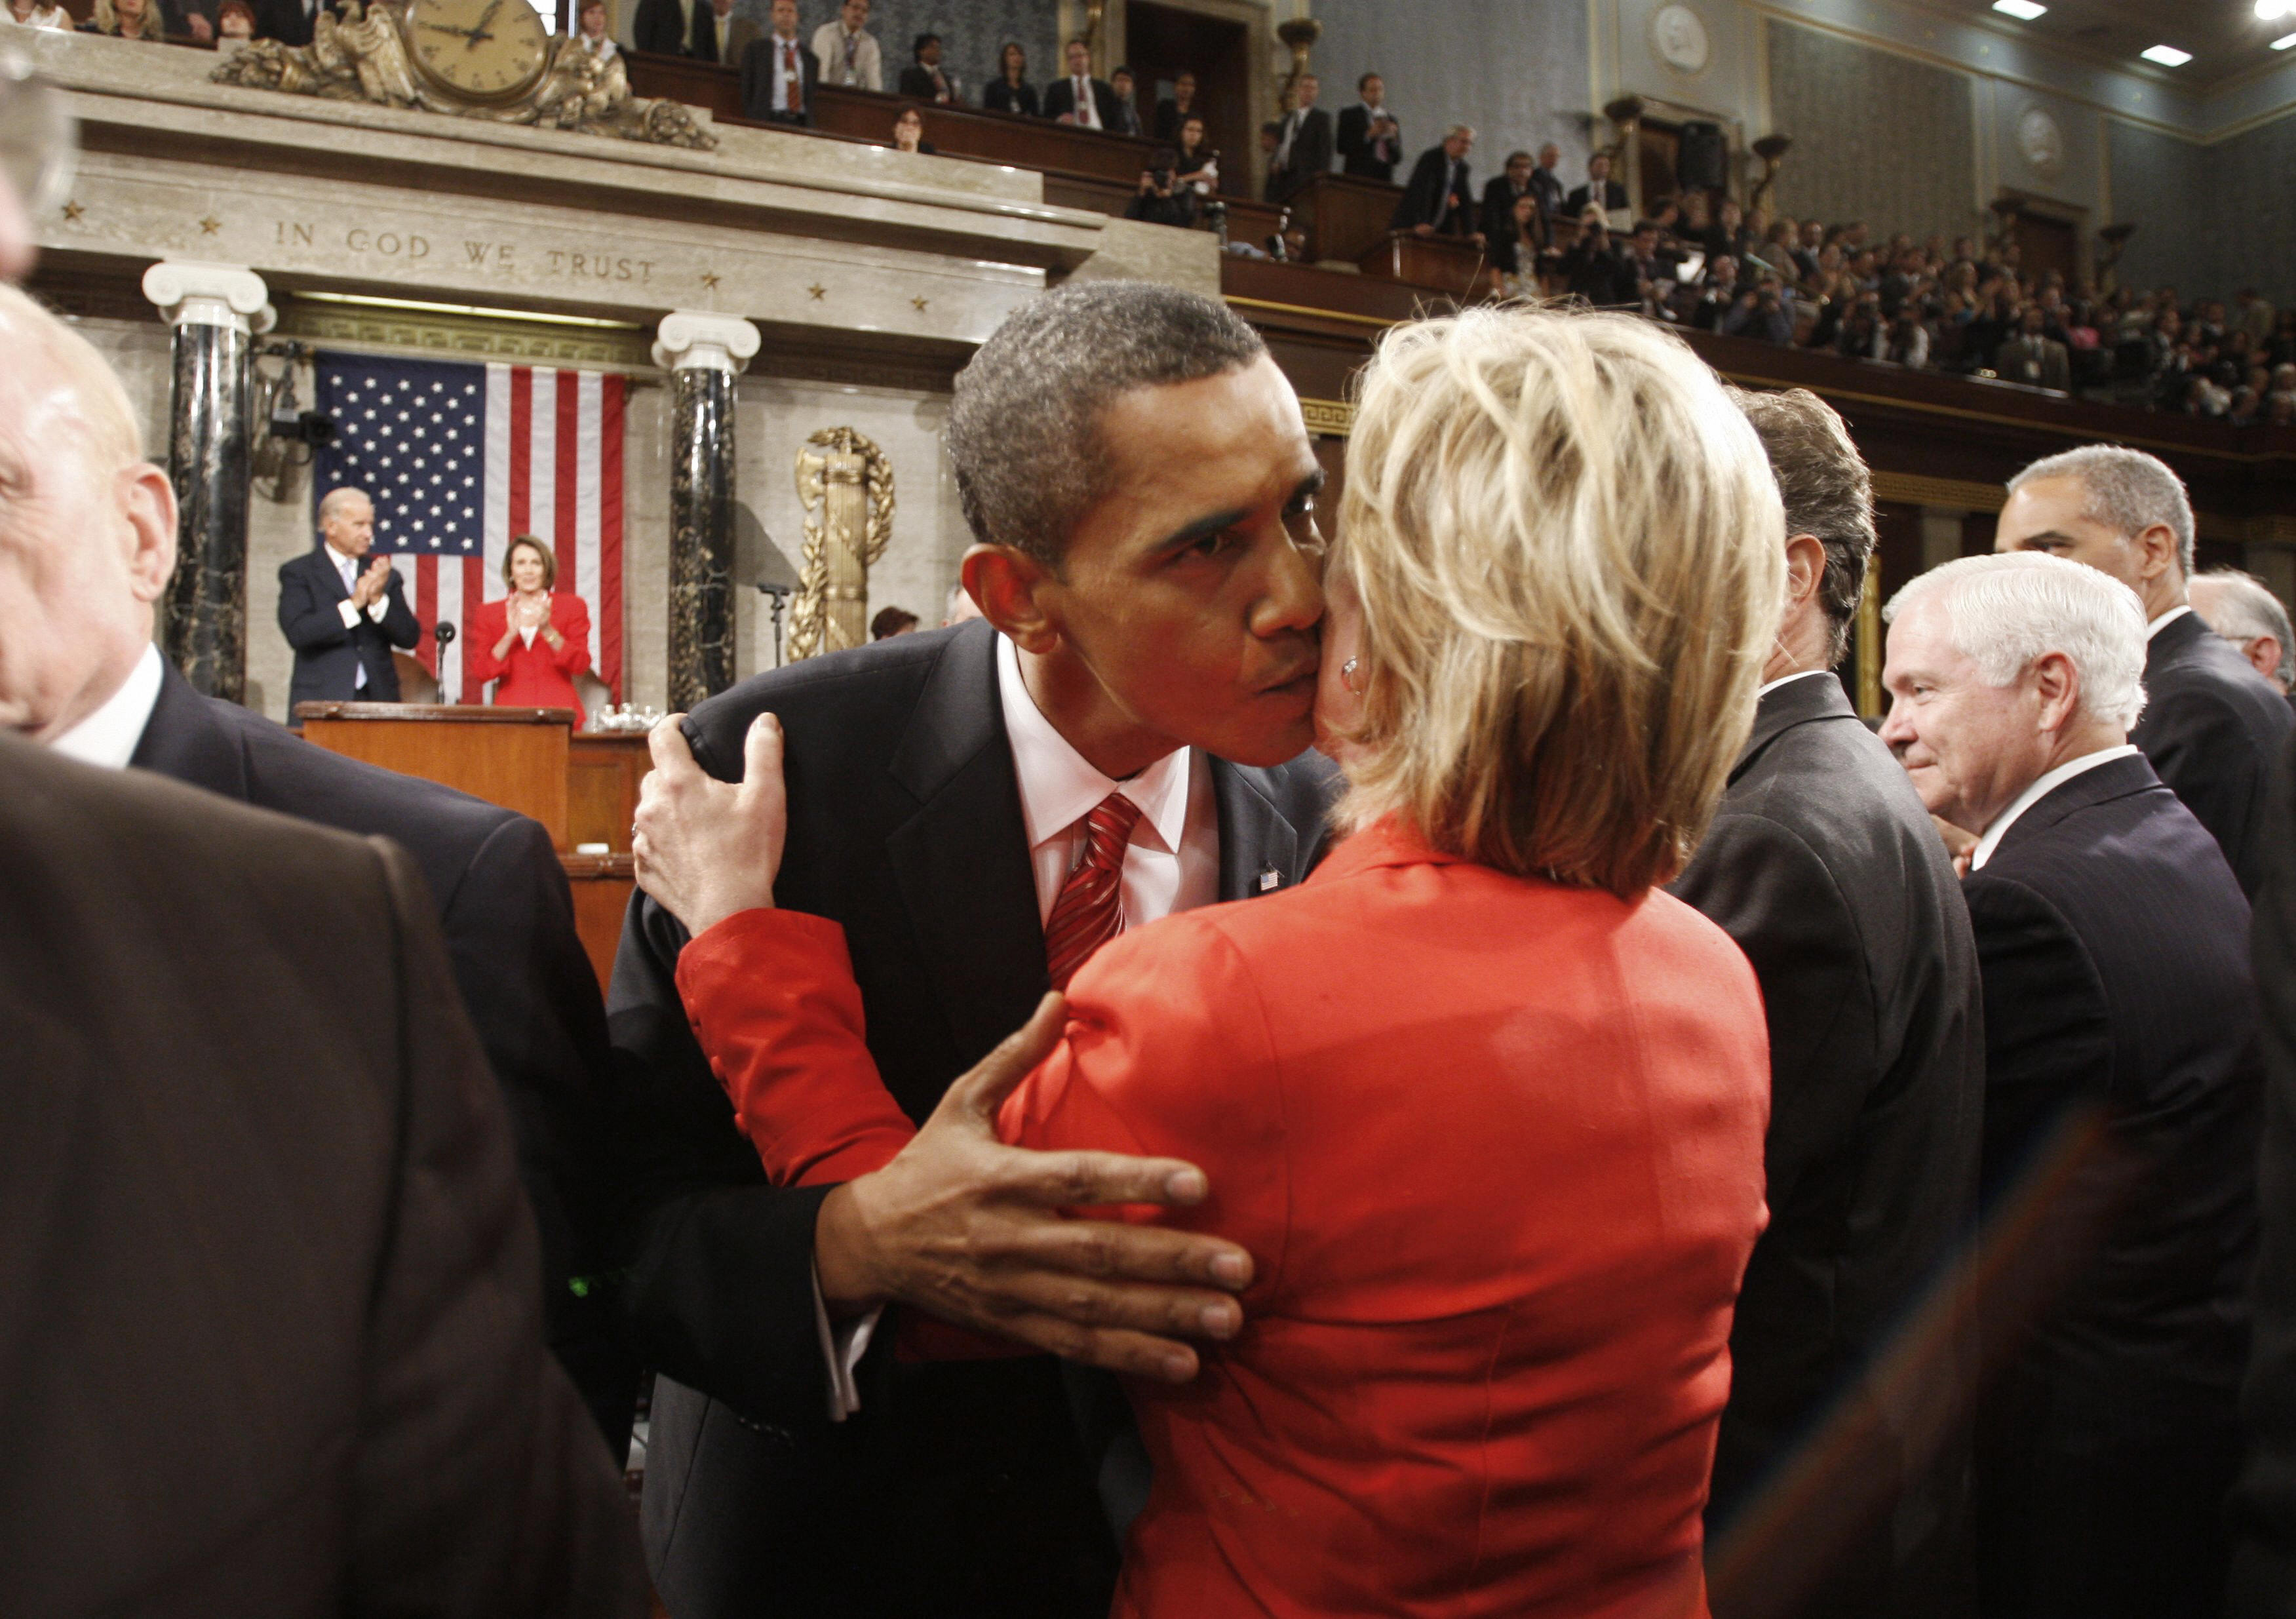 US President Barack Obama kisses US Secretary of State Hillary Clinton after his speech about health care reform before a joint session of Congress on Capitol Hill in Washington, Sept. 9, 2009.